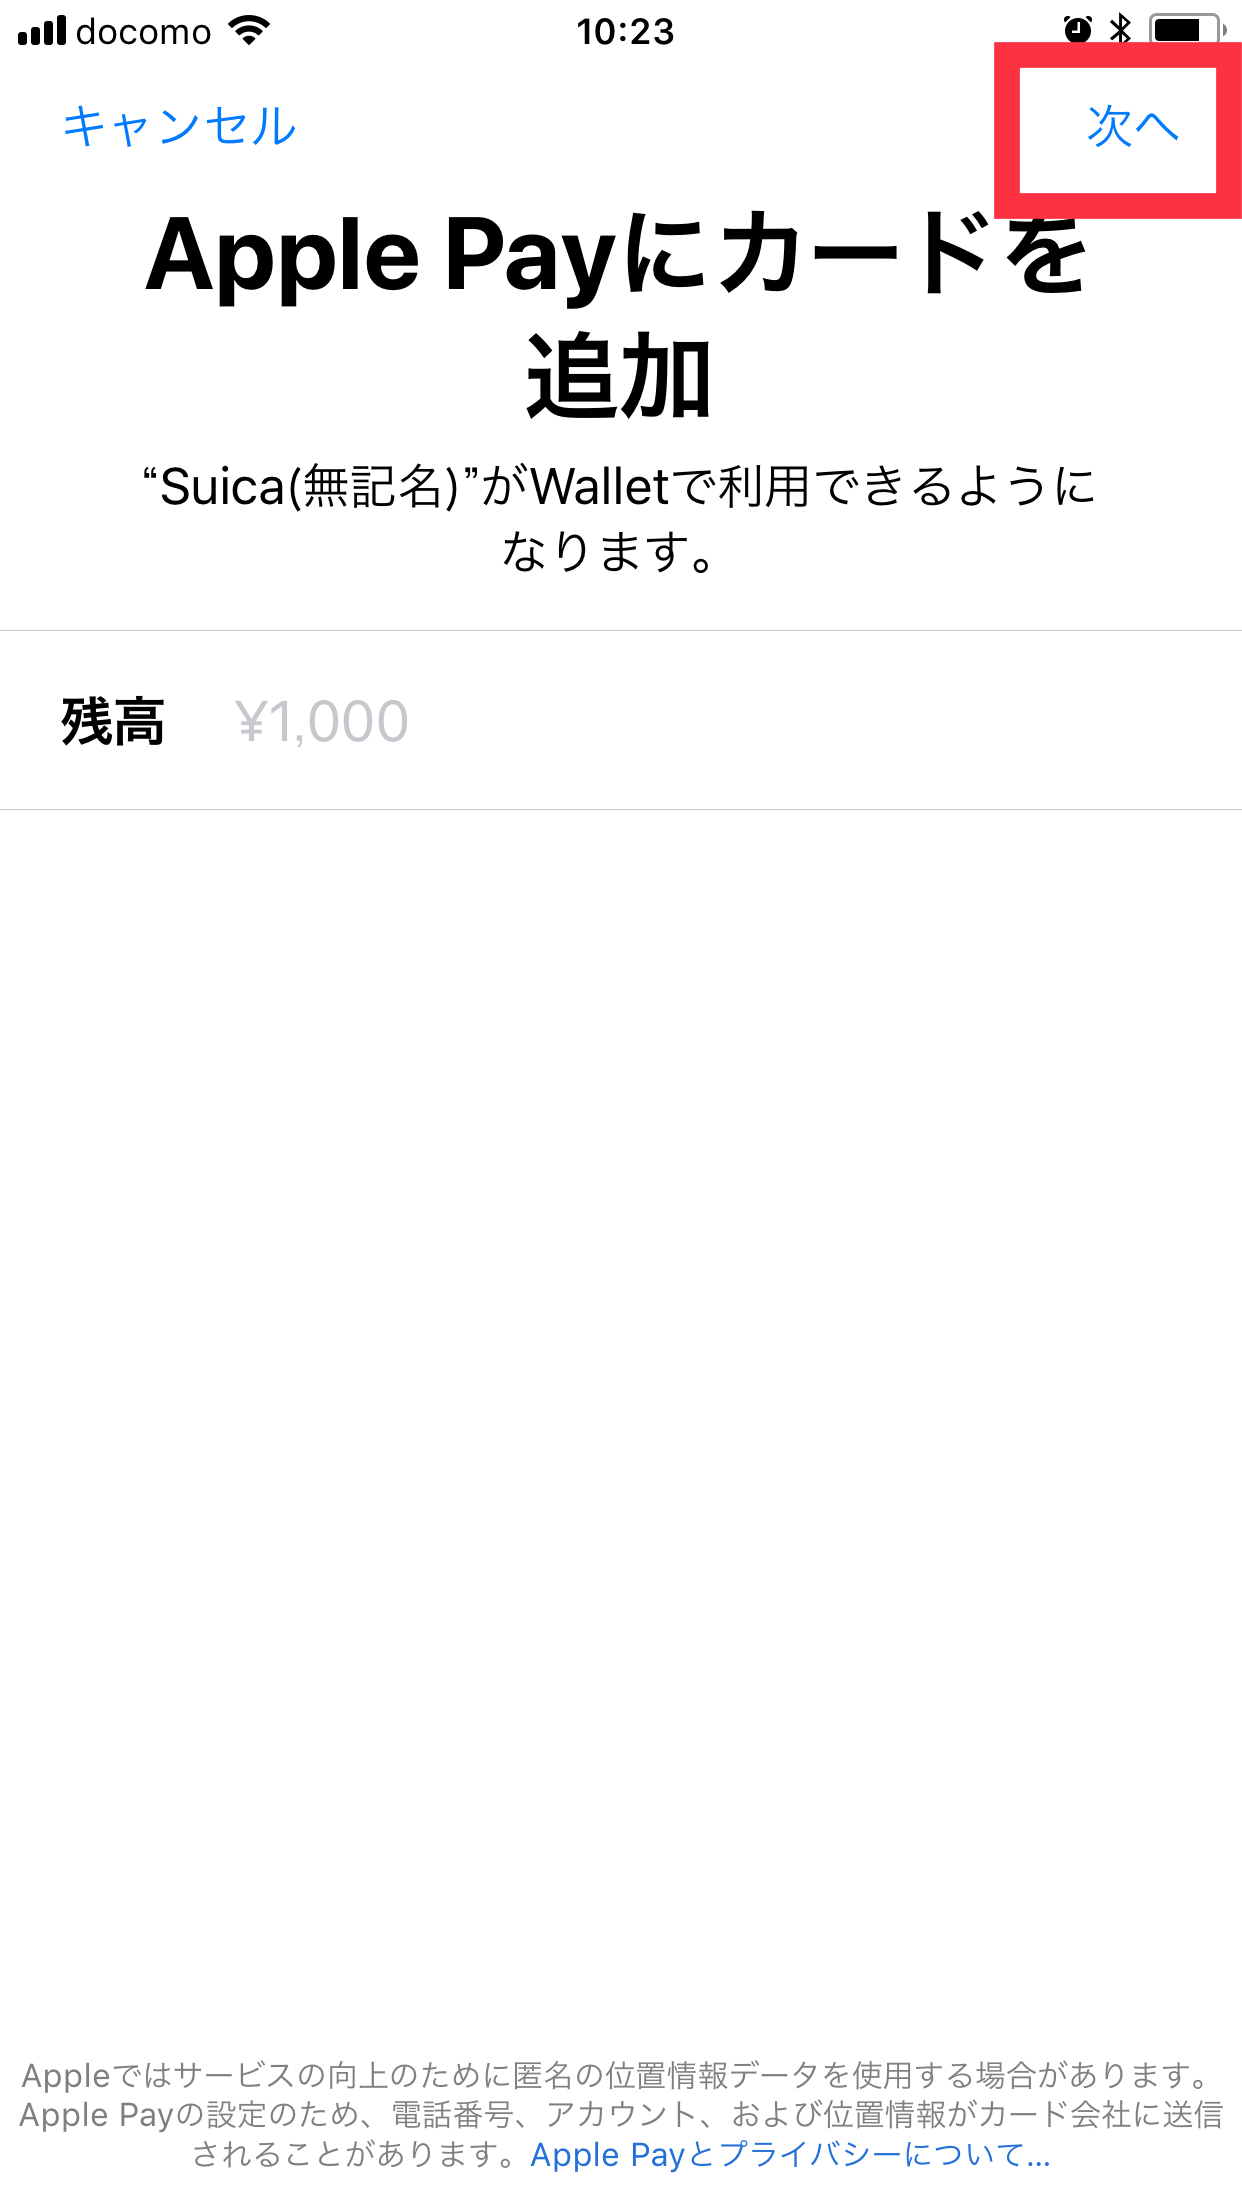 Suica App 8 add Suica to Apple Pay